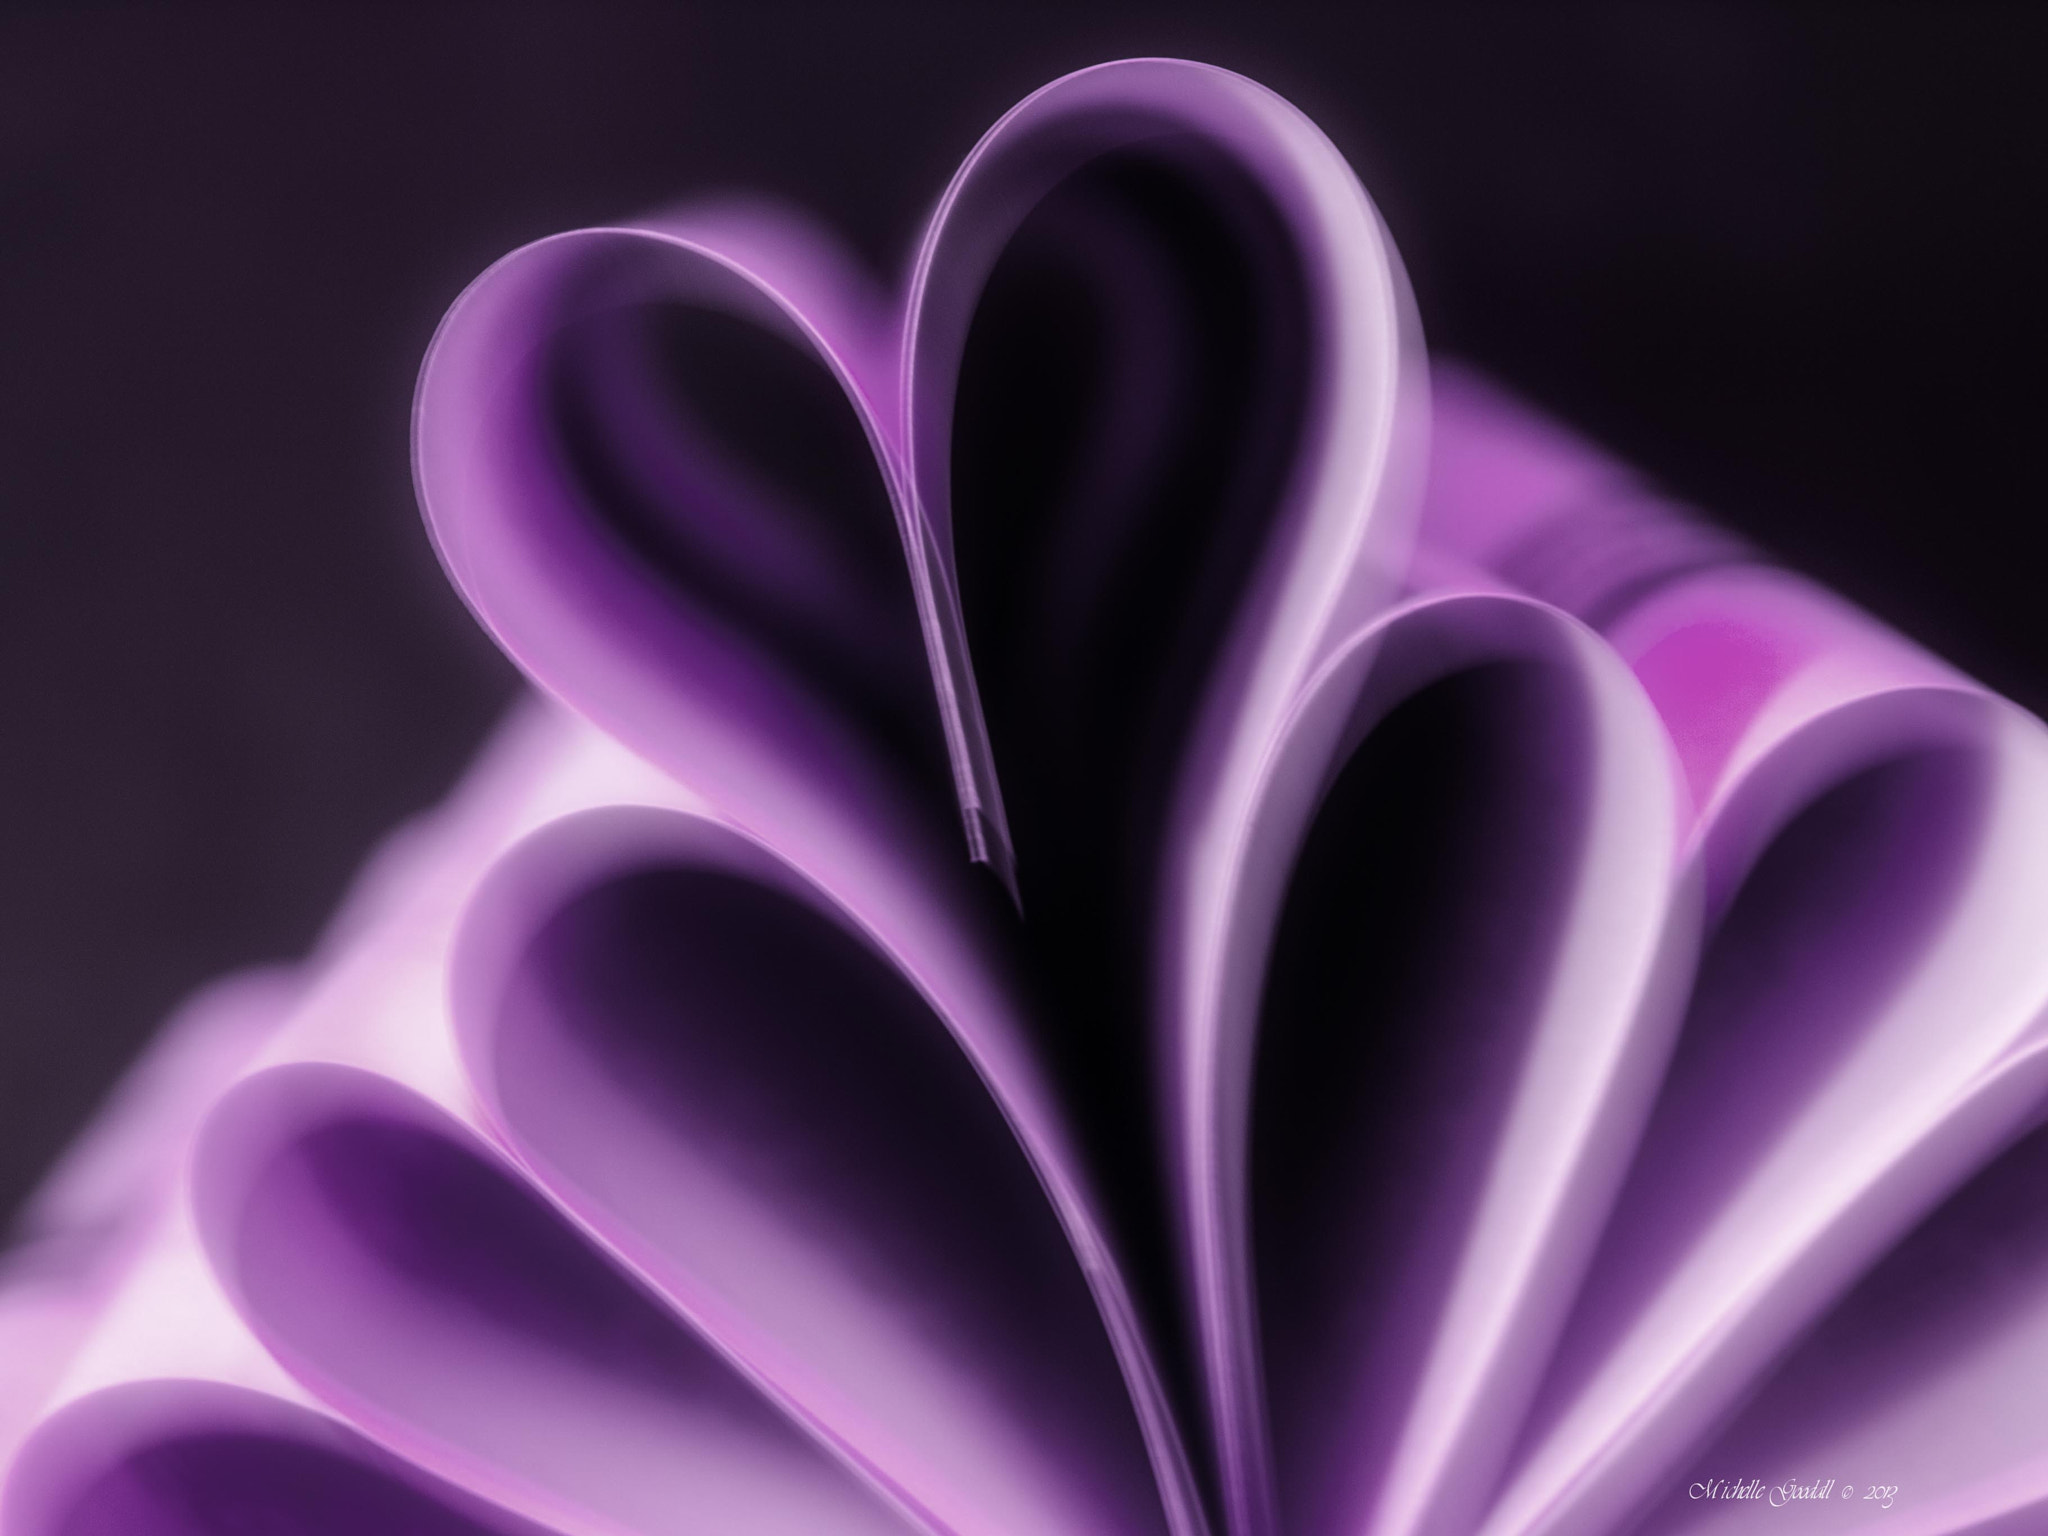 Photograph Pages to my heart by Michelle Goodall on 500px